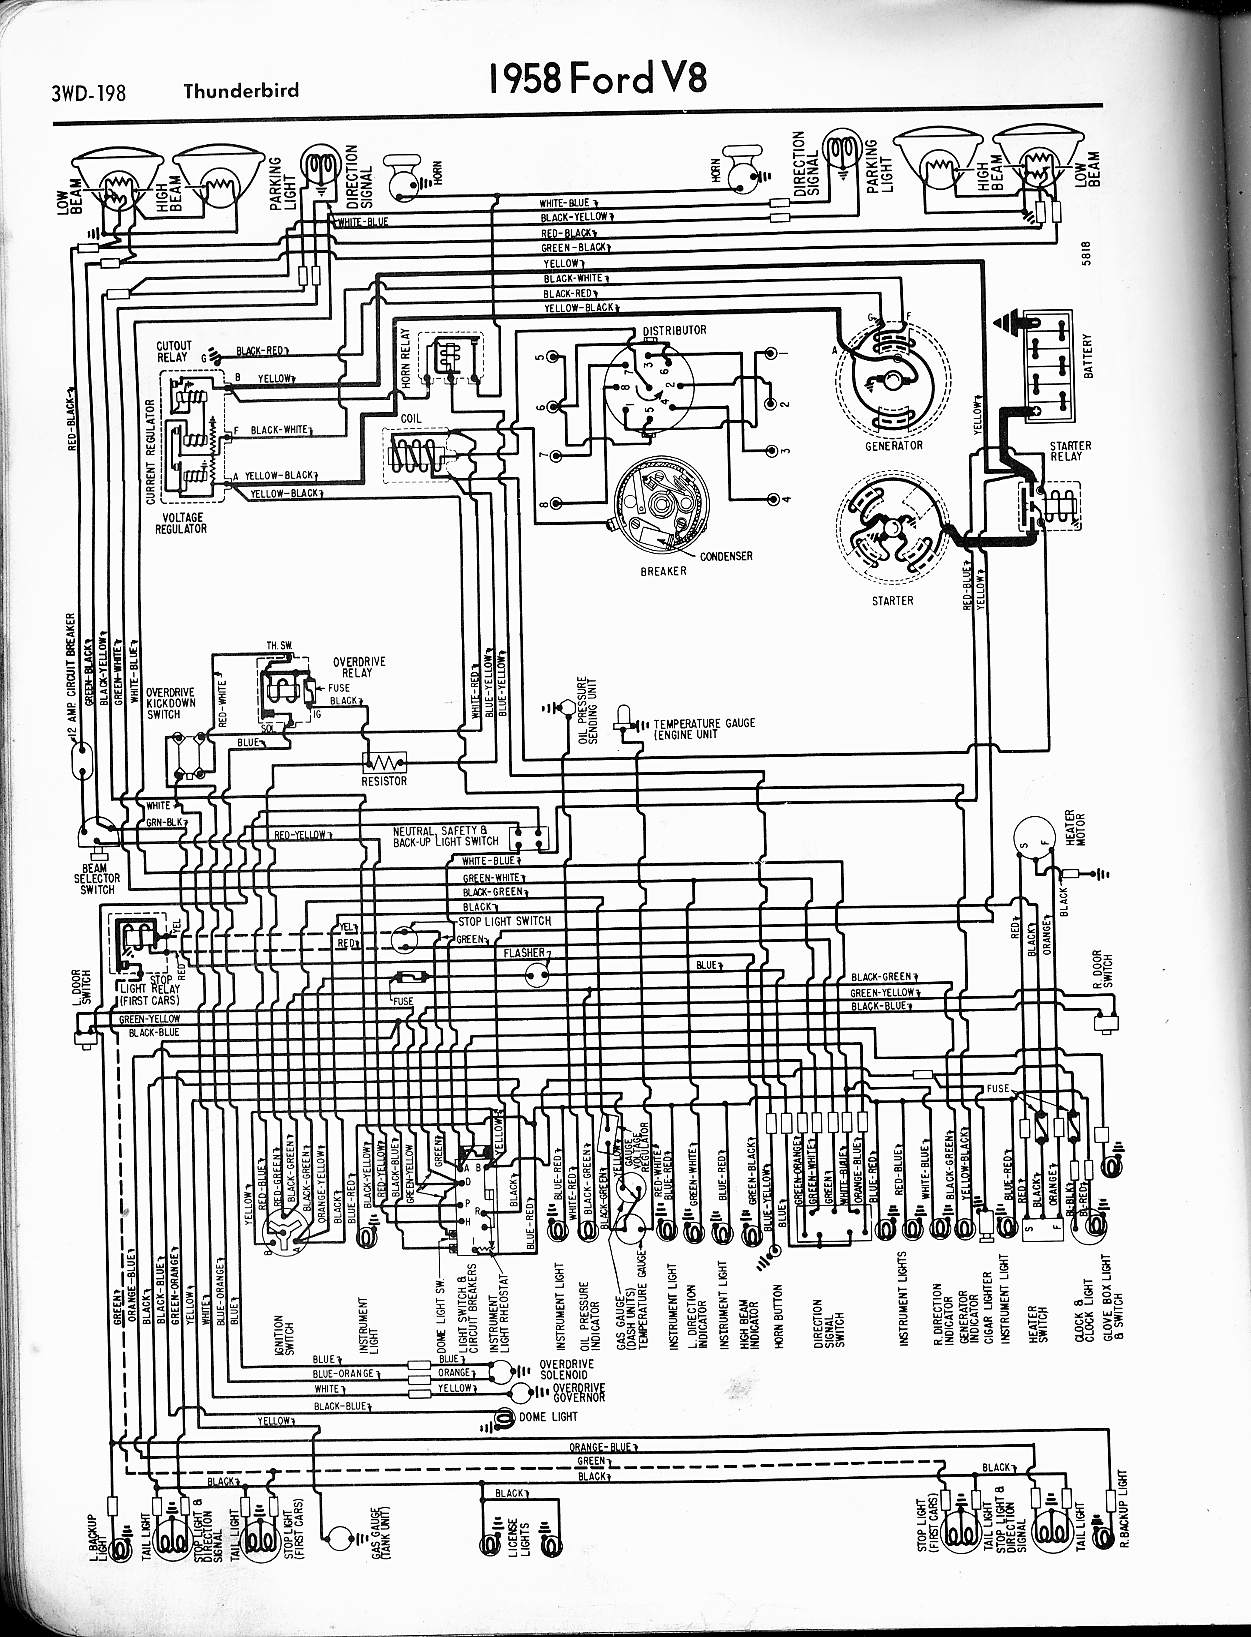 1965 T Bird Wiring Diagram Turn Signals Start Building A Signal Stat 900 57 65 Ford Diagrams Rh Oldcarmanualproject Com Switch